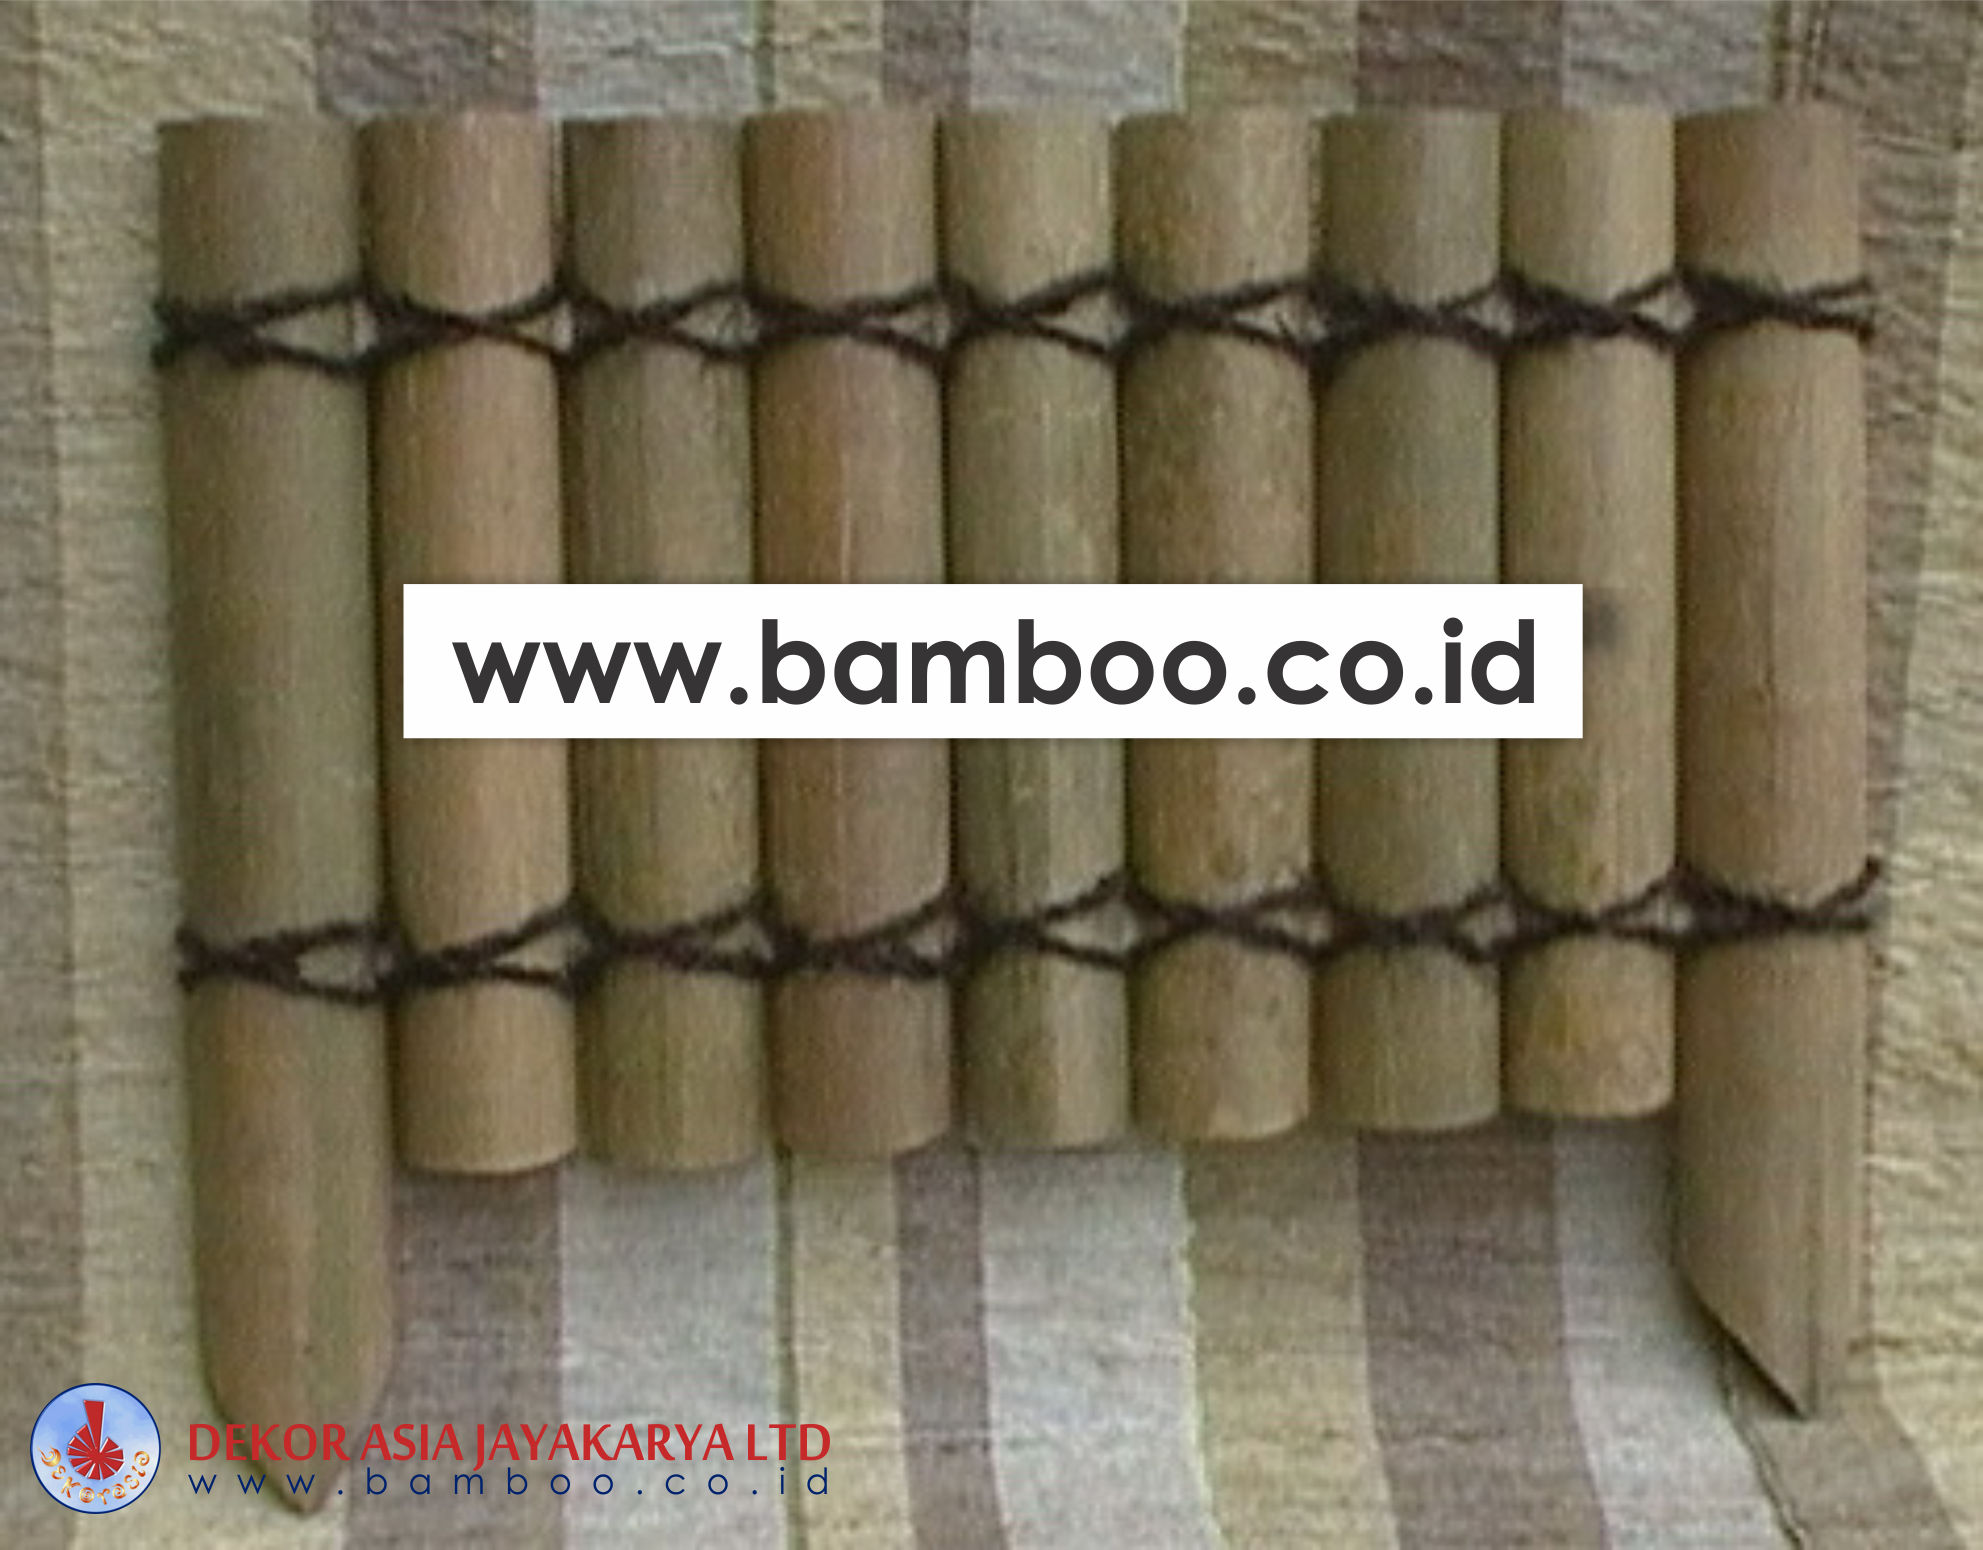 Bamboo Border Edging Natural - Bamboo Edging - Bamboo Borders